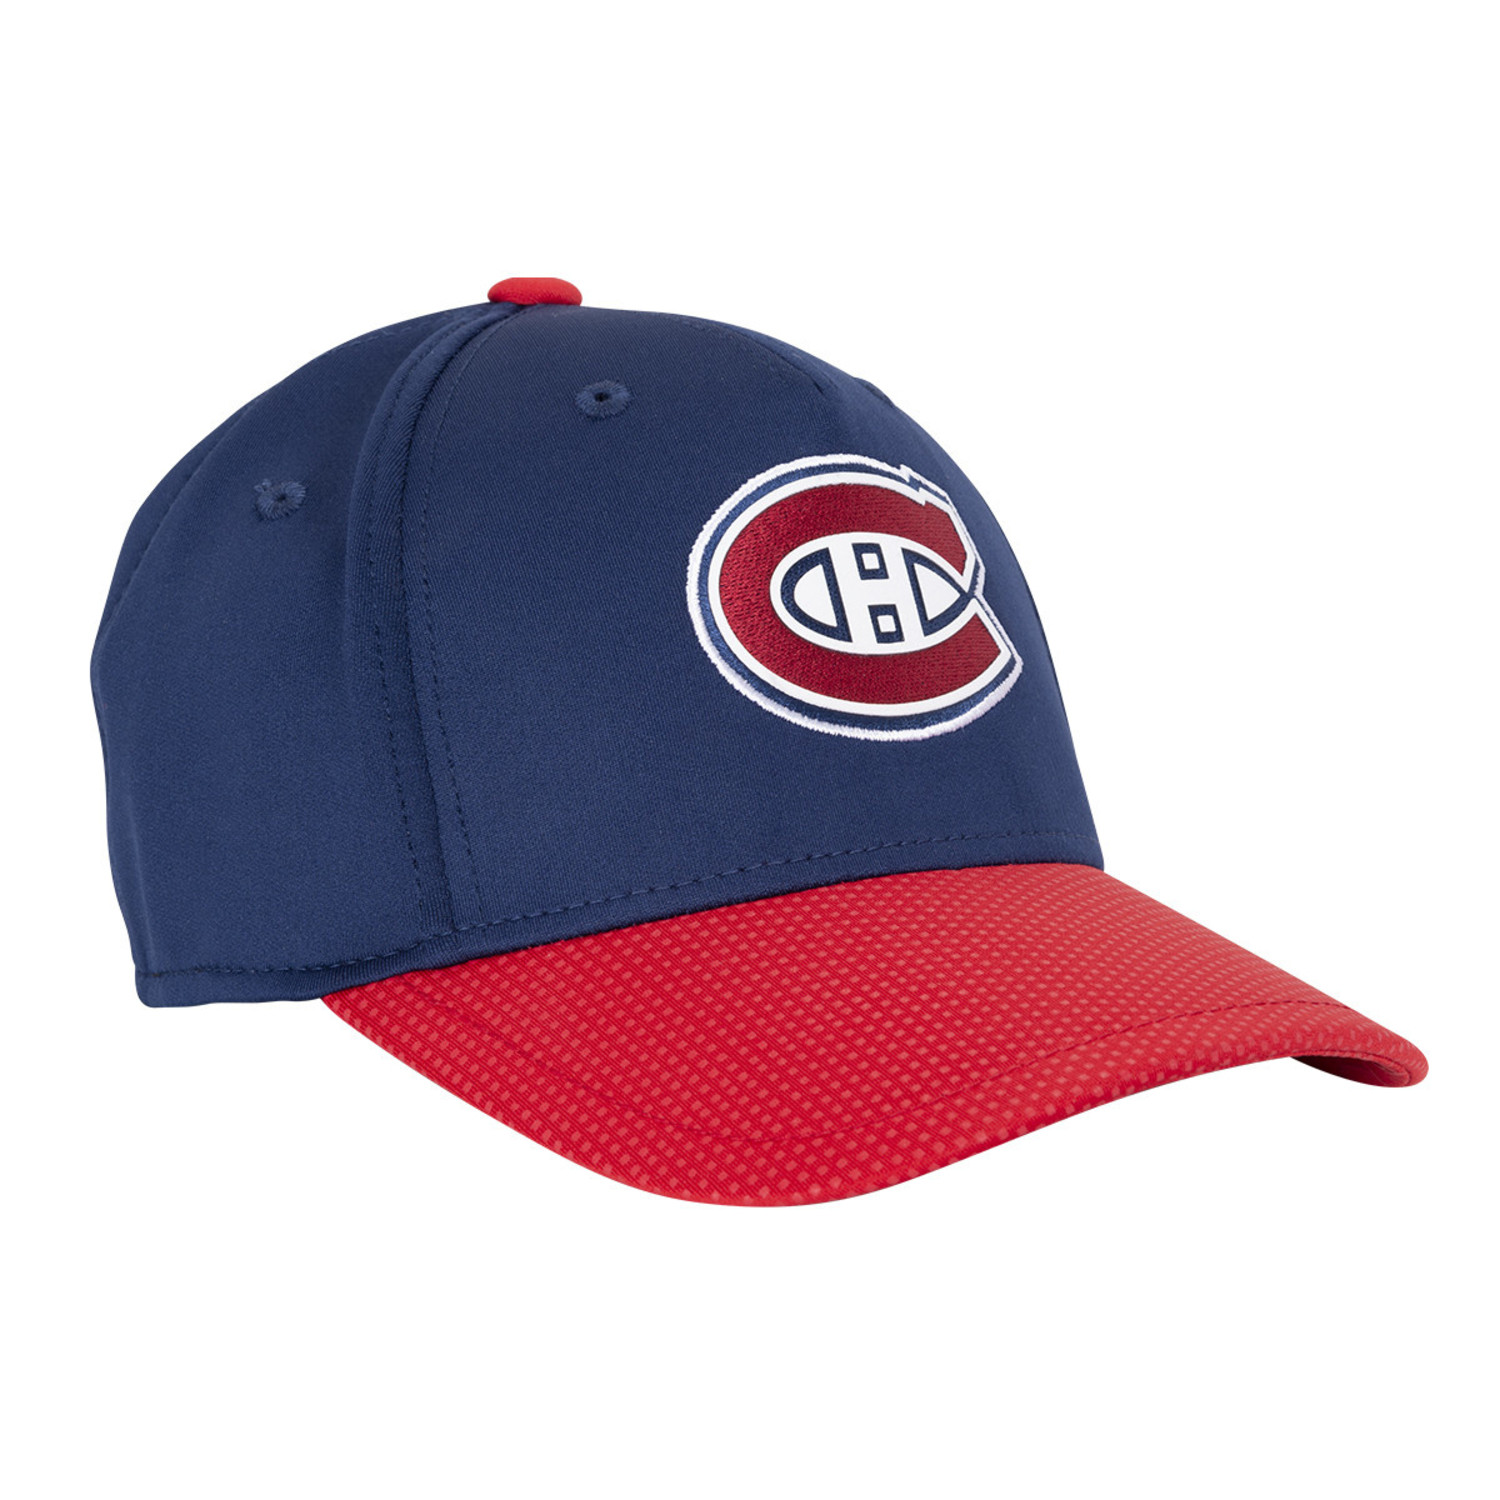 2019 Montreal Canadiens Kids Draft Hat Tricolore Sports Tricolore Sports